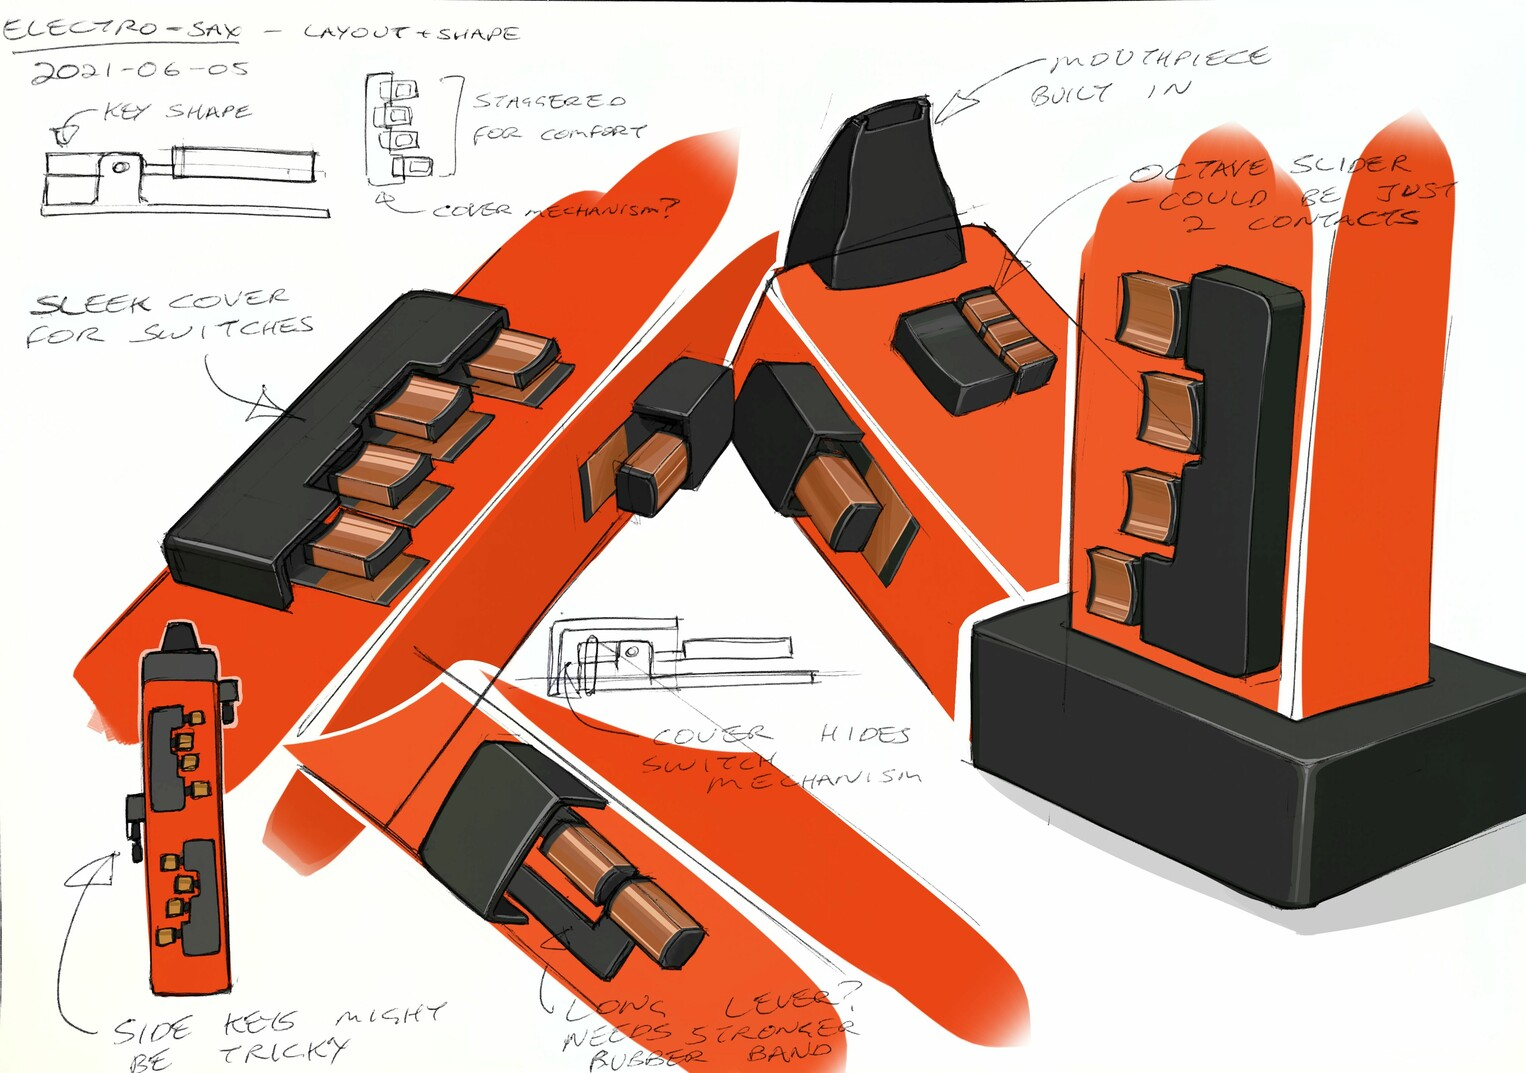 Sketches of various details of electro-sax ideas, at jaunty angles. Mostly centred around adding covers which hide the mechanism of the keys. It's all coloured in very bold orange and greys, with somewhat realistic looking copper on the keys.